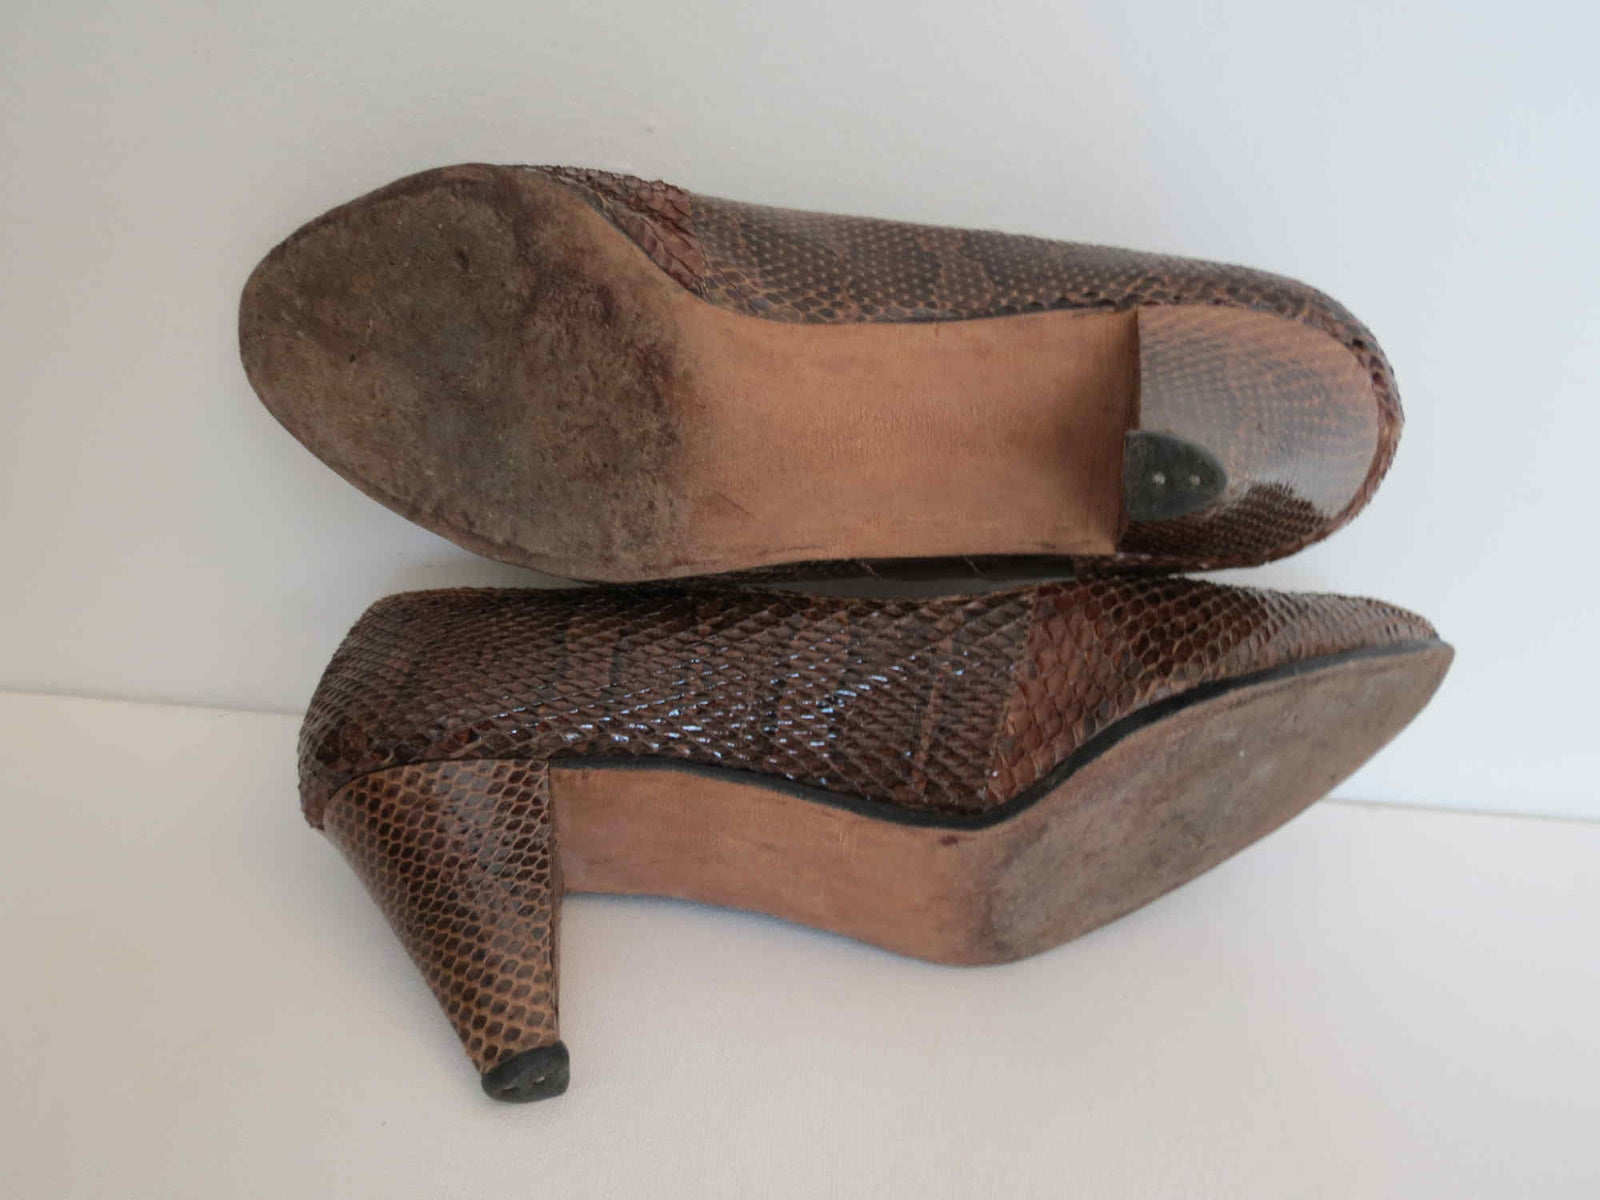 vintage 1950s brown snakeskin shoes heels by power shoe size 6